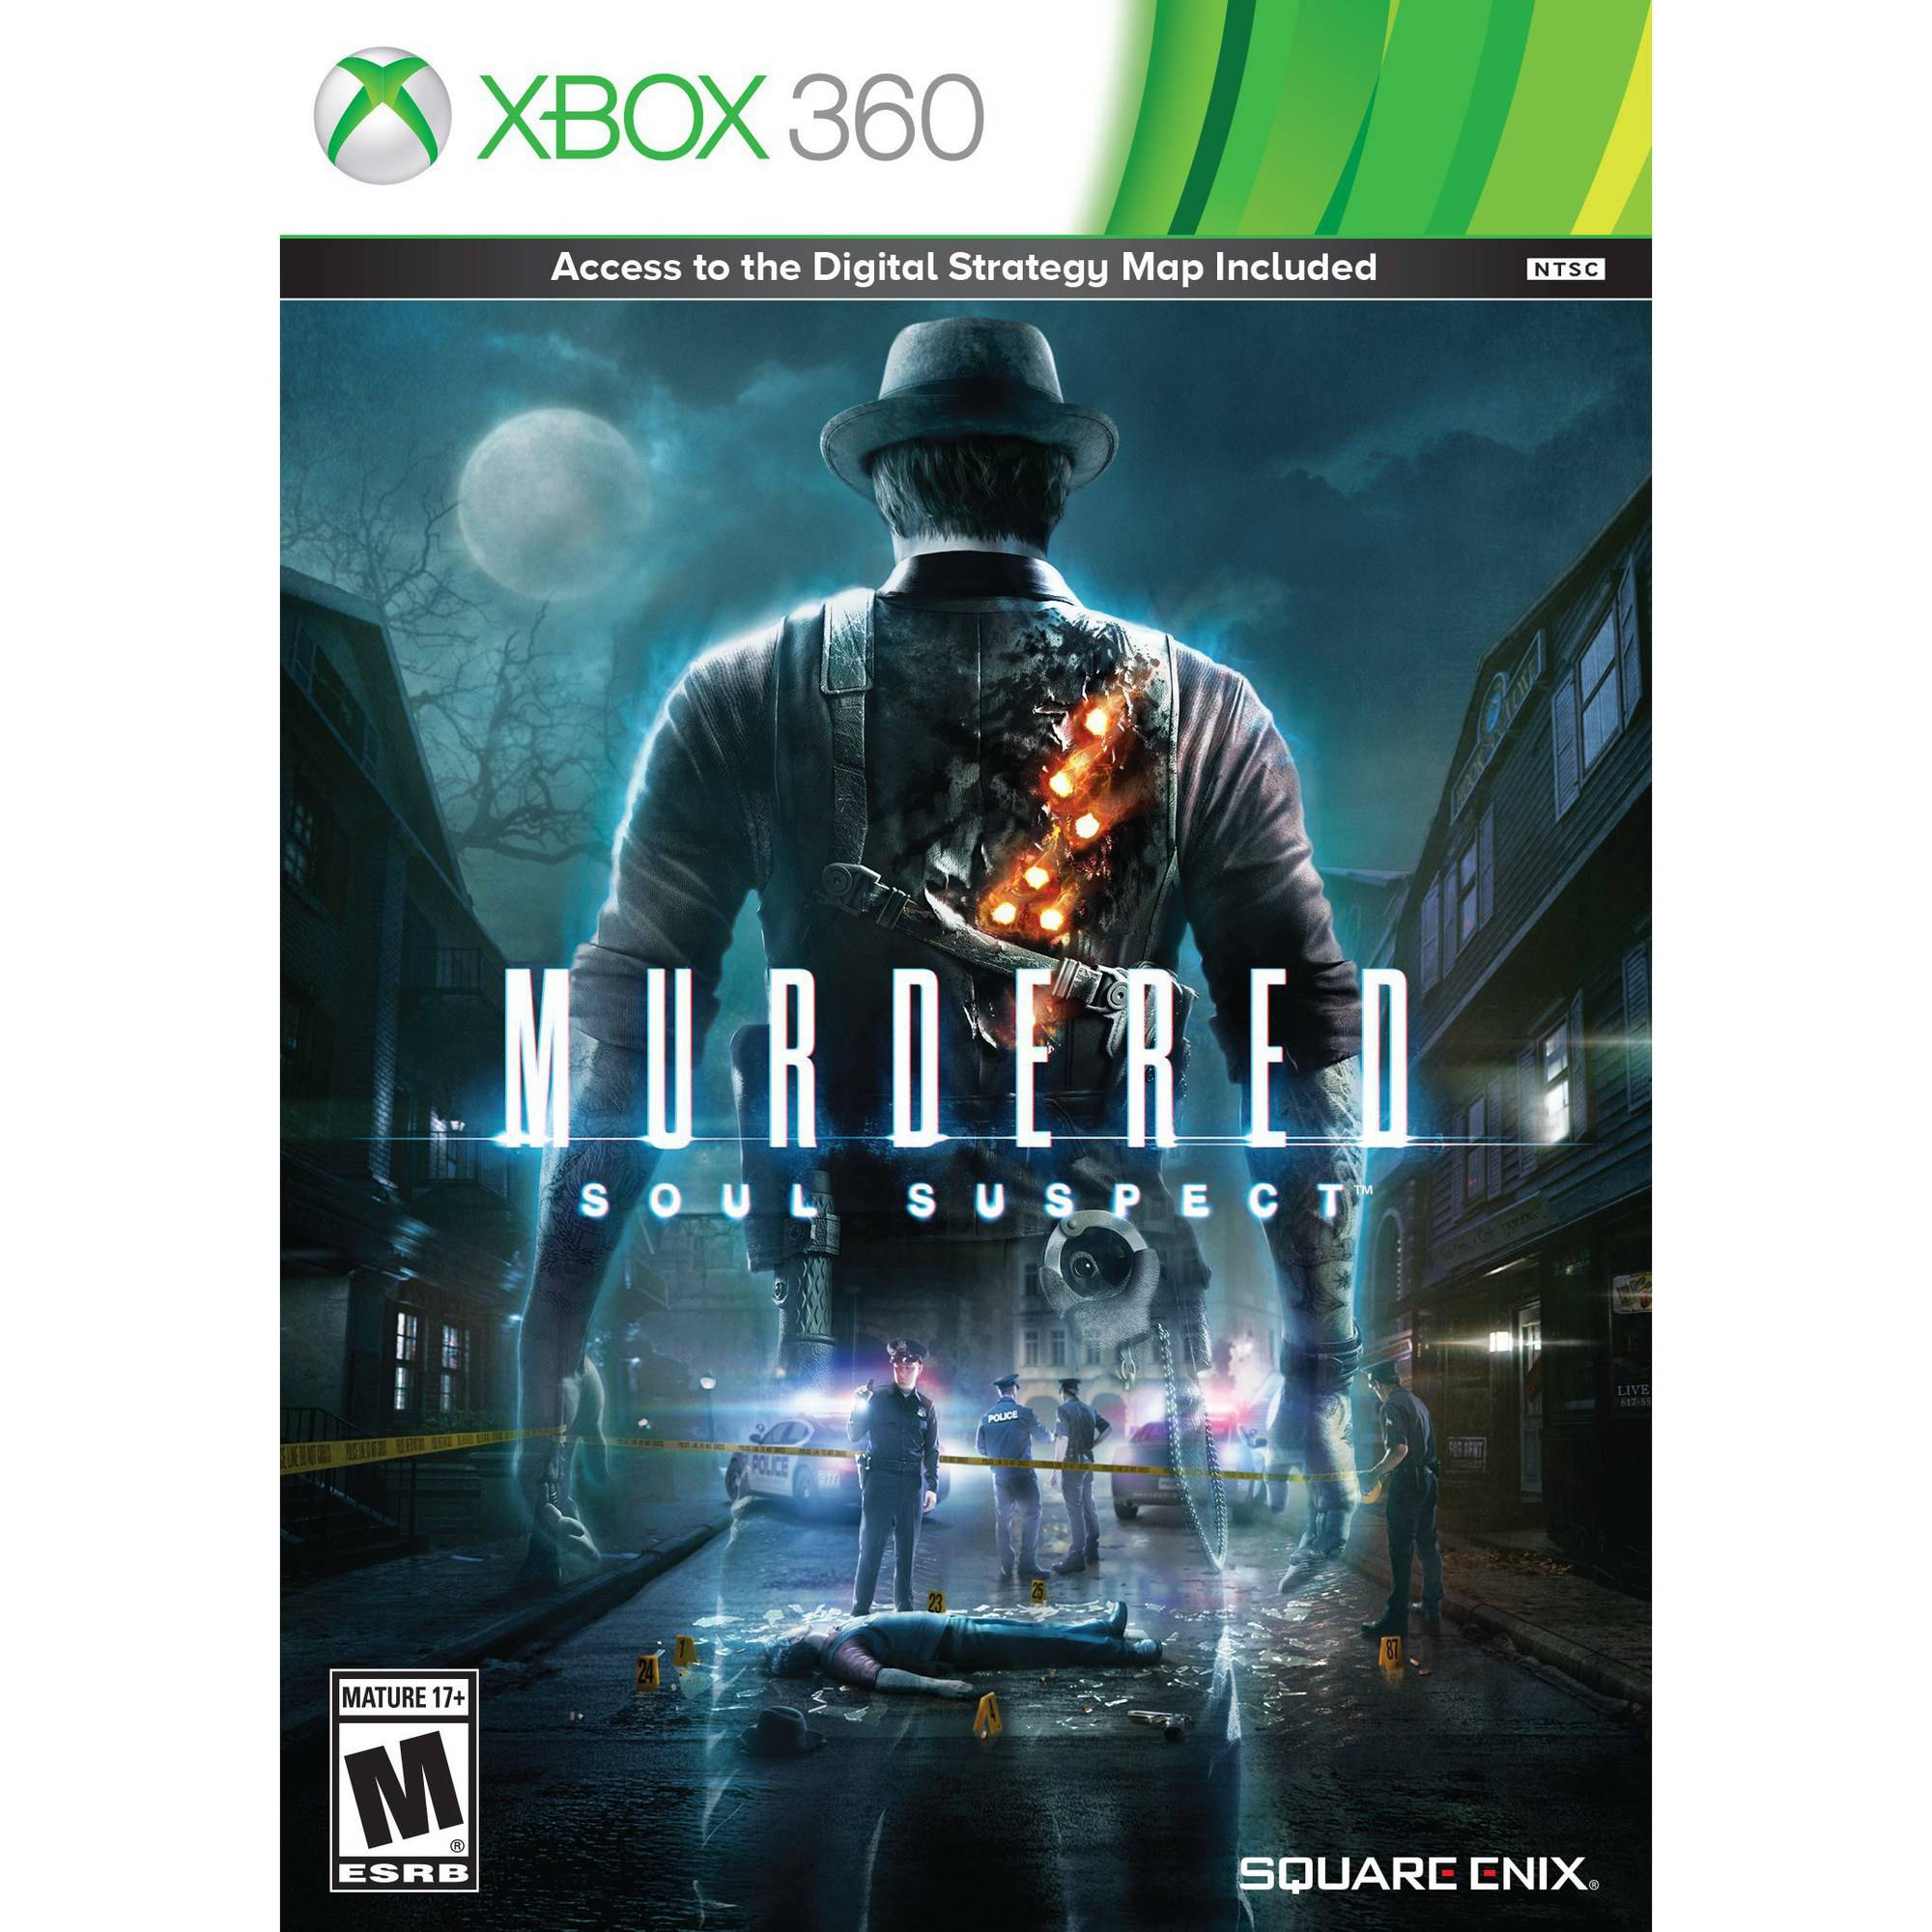 Murdered: Soul Suspect (Xbox 360) - Pre-Owned